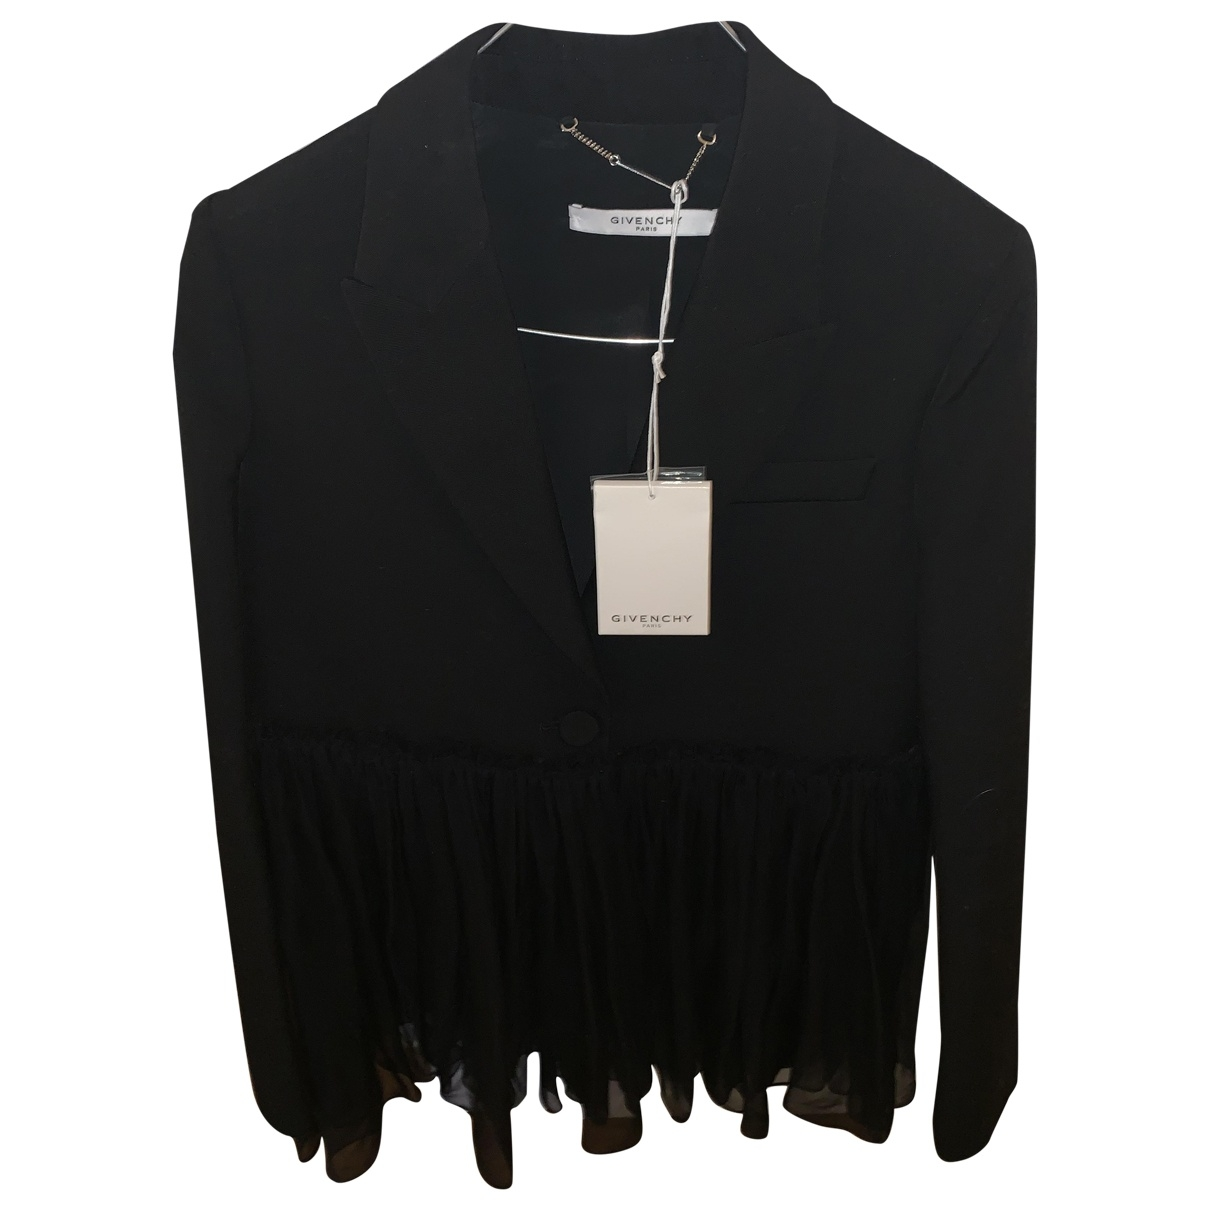 Givenchy \N Black Cotton jacket for Women 36 FR